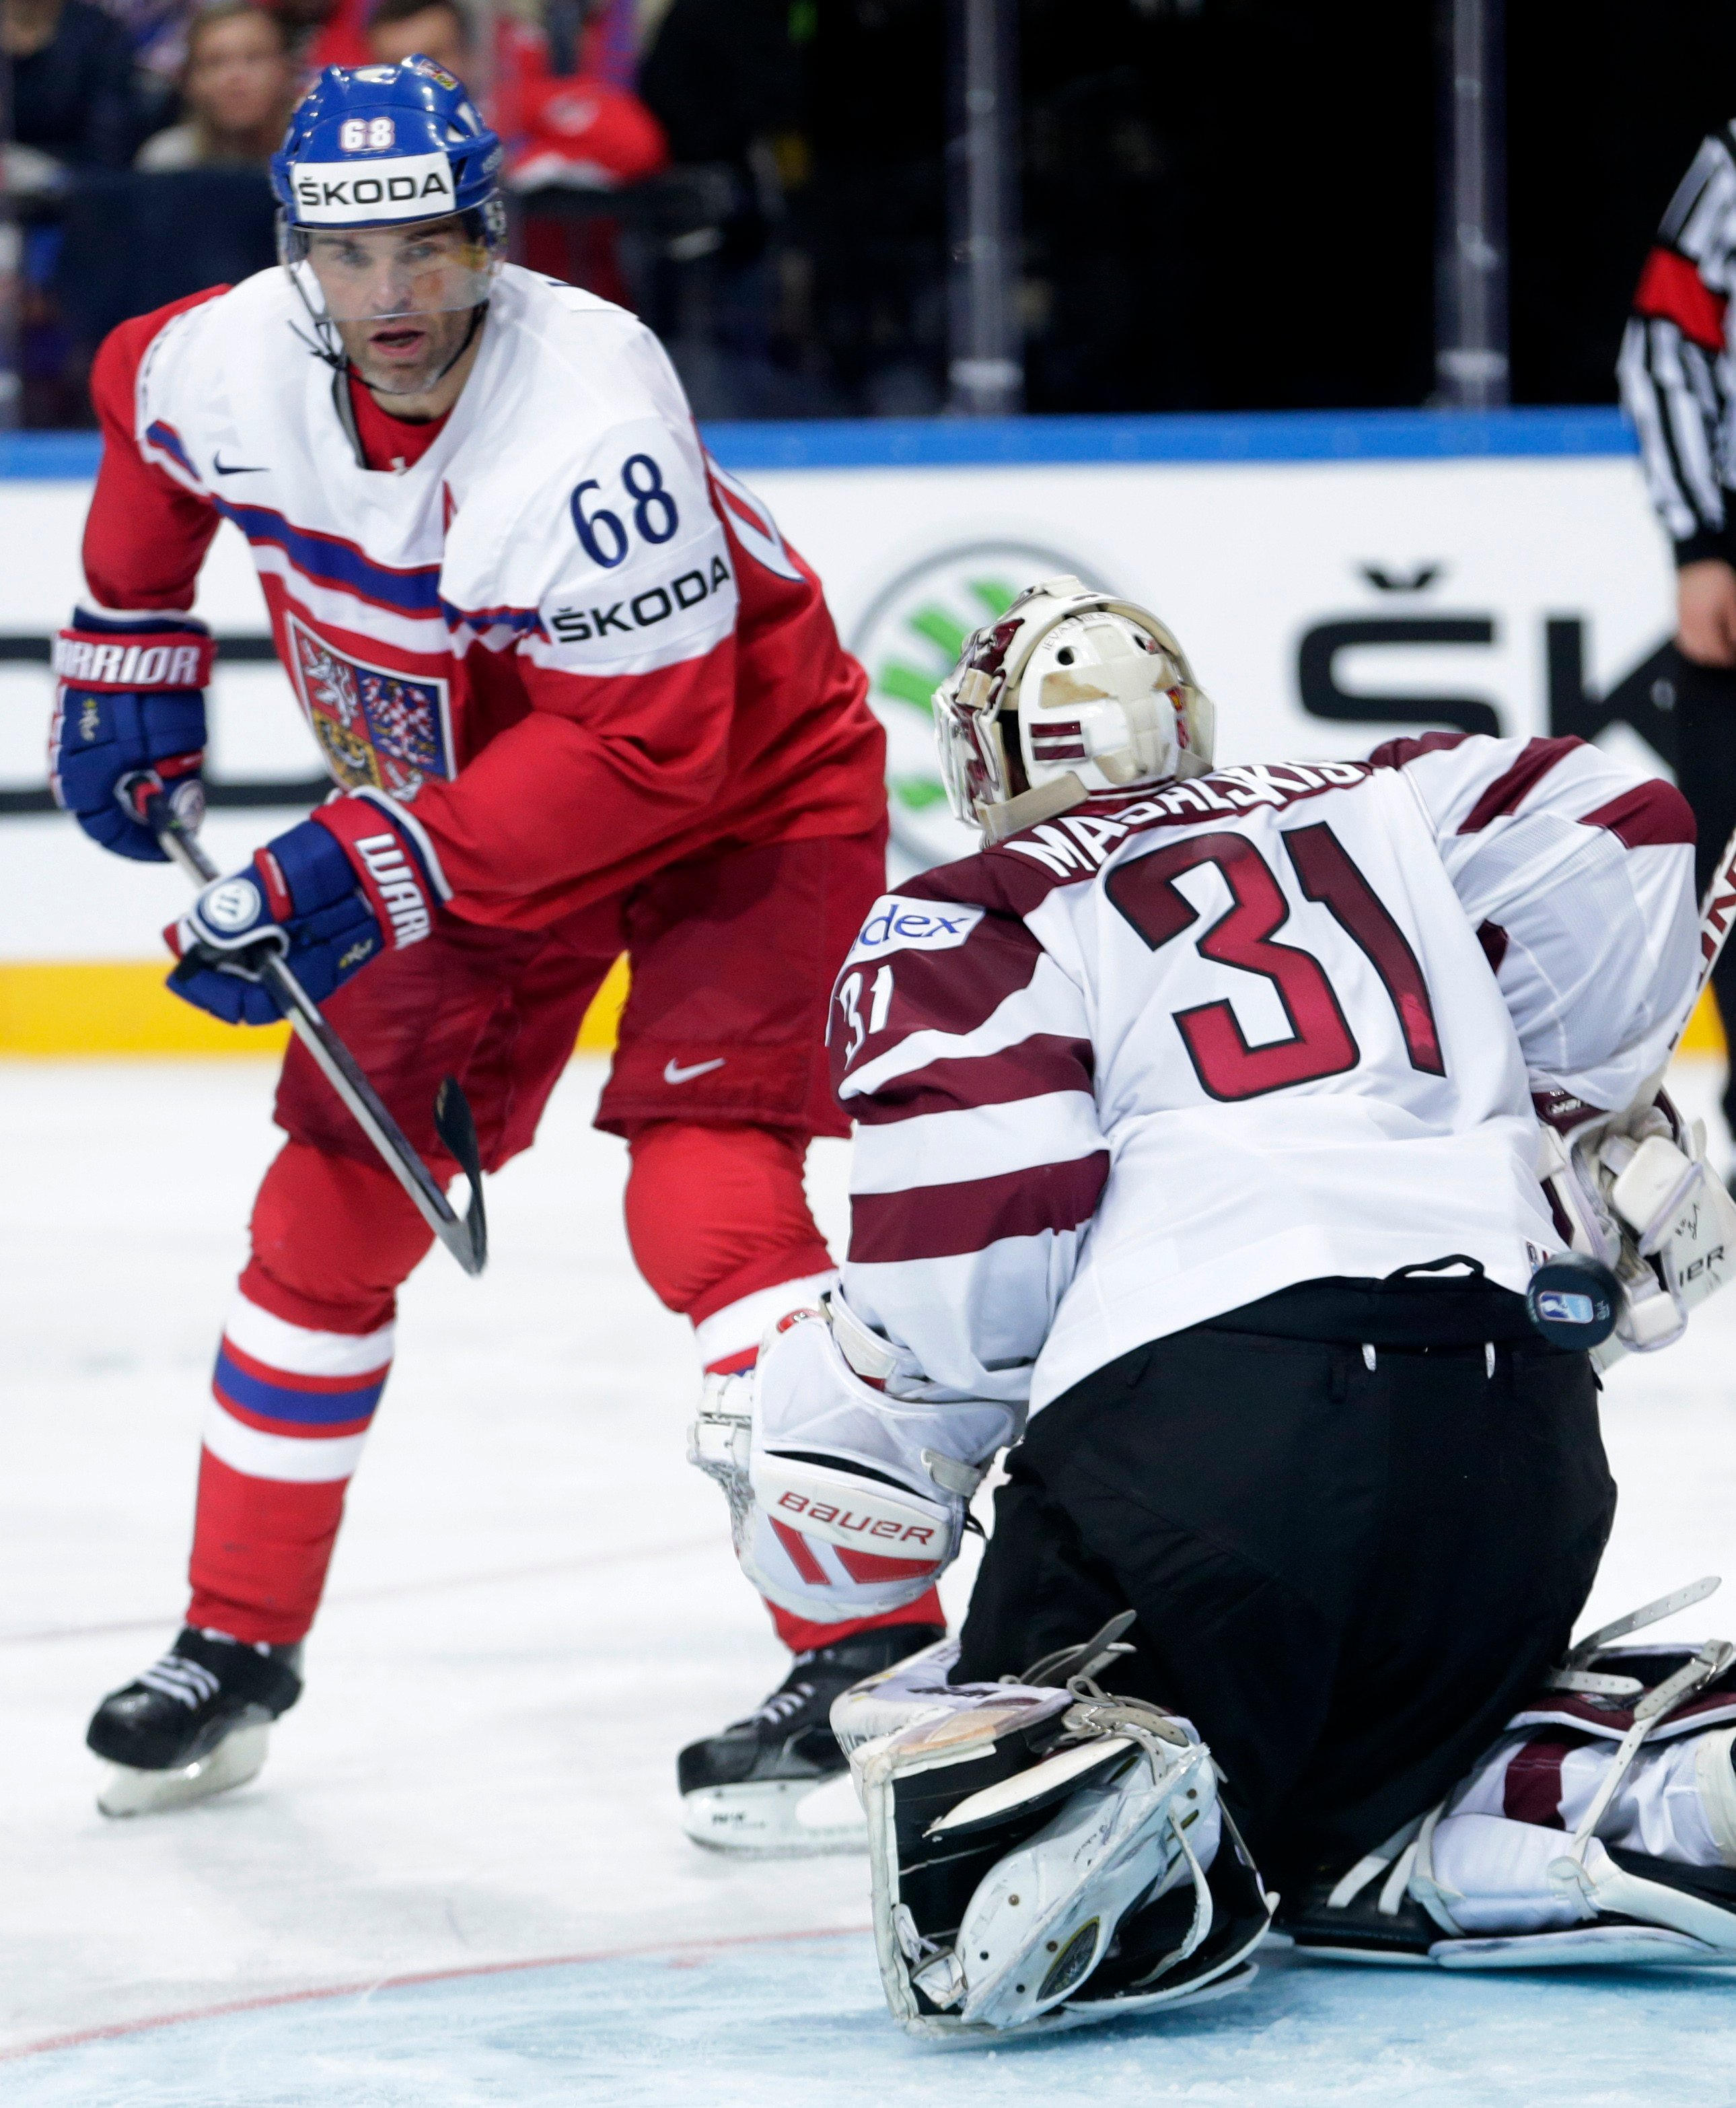 czech_republic_hockey_worlds-9b8a3337088_r9177.jpeg